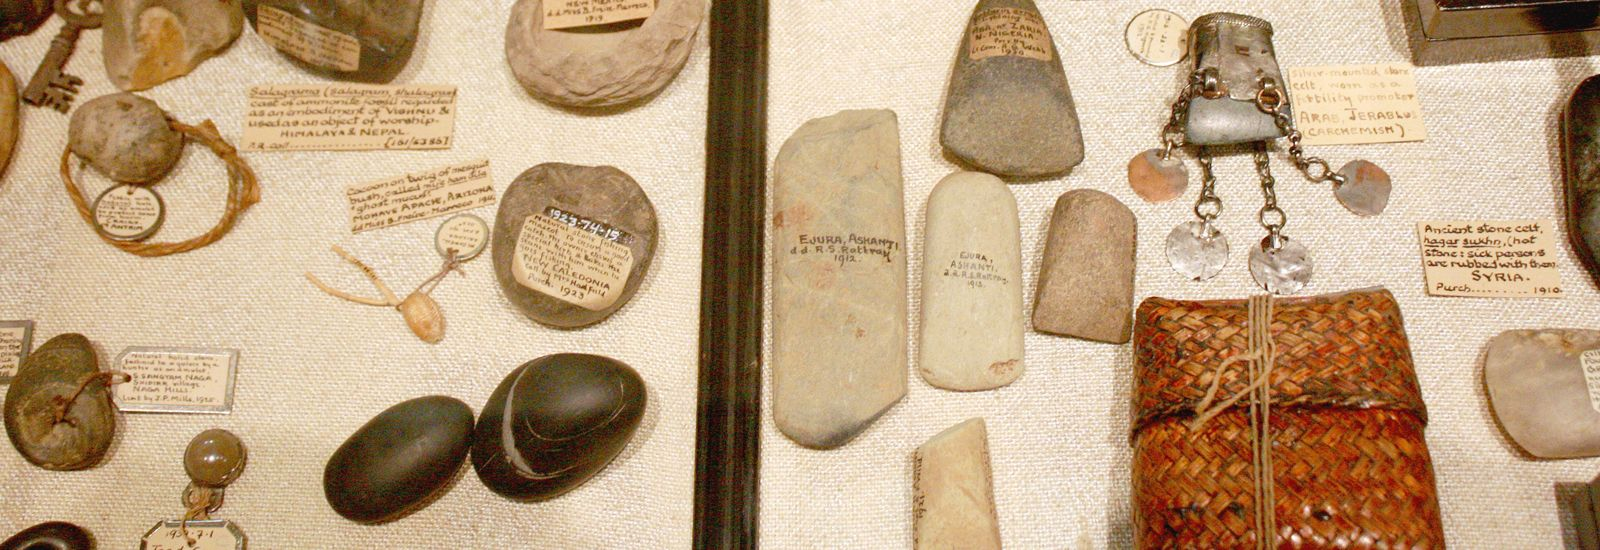 A Pitt Rivers Museum exhibit showing a variety of stone artefacts